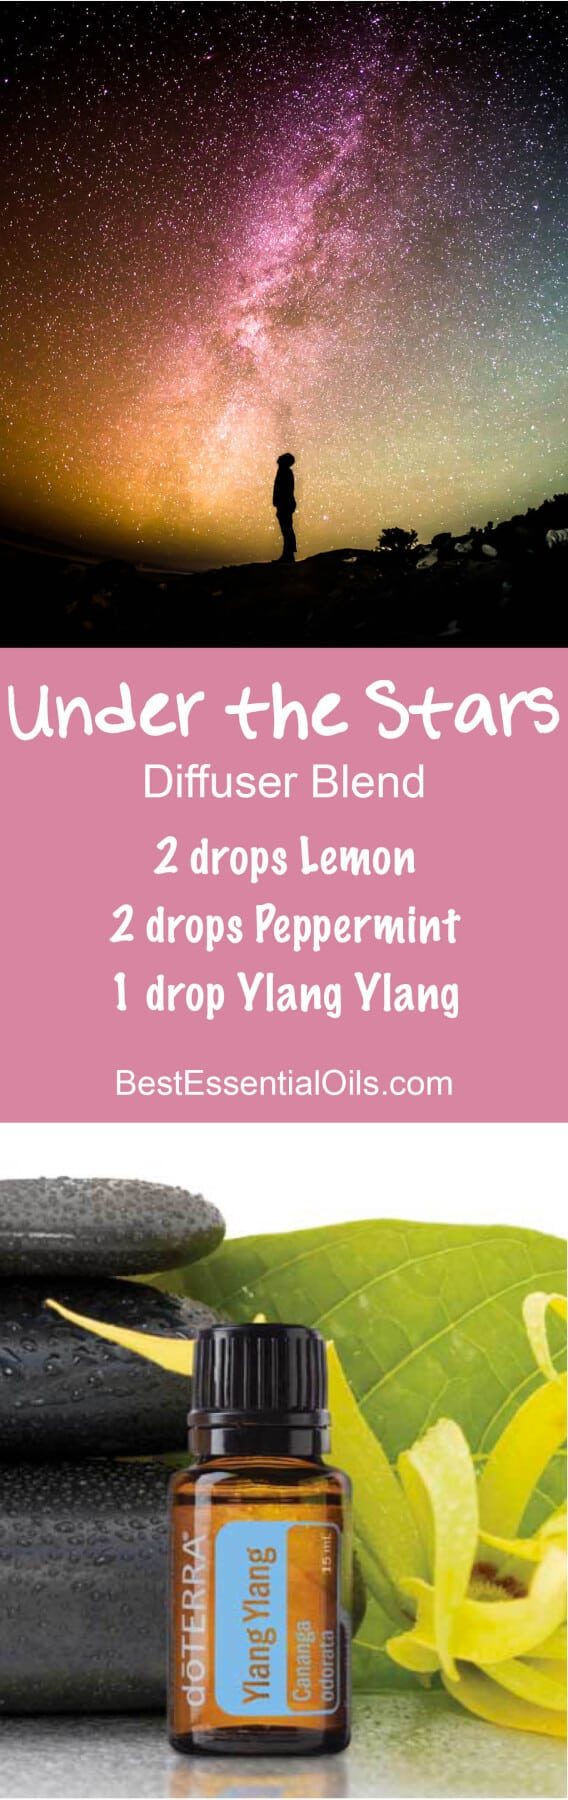 Under the Stars doTERRA Diffuser Blend